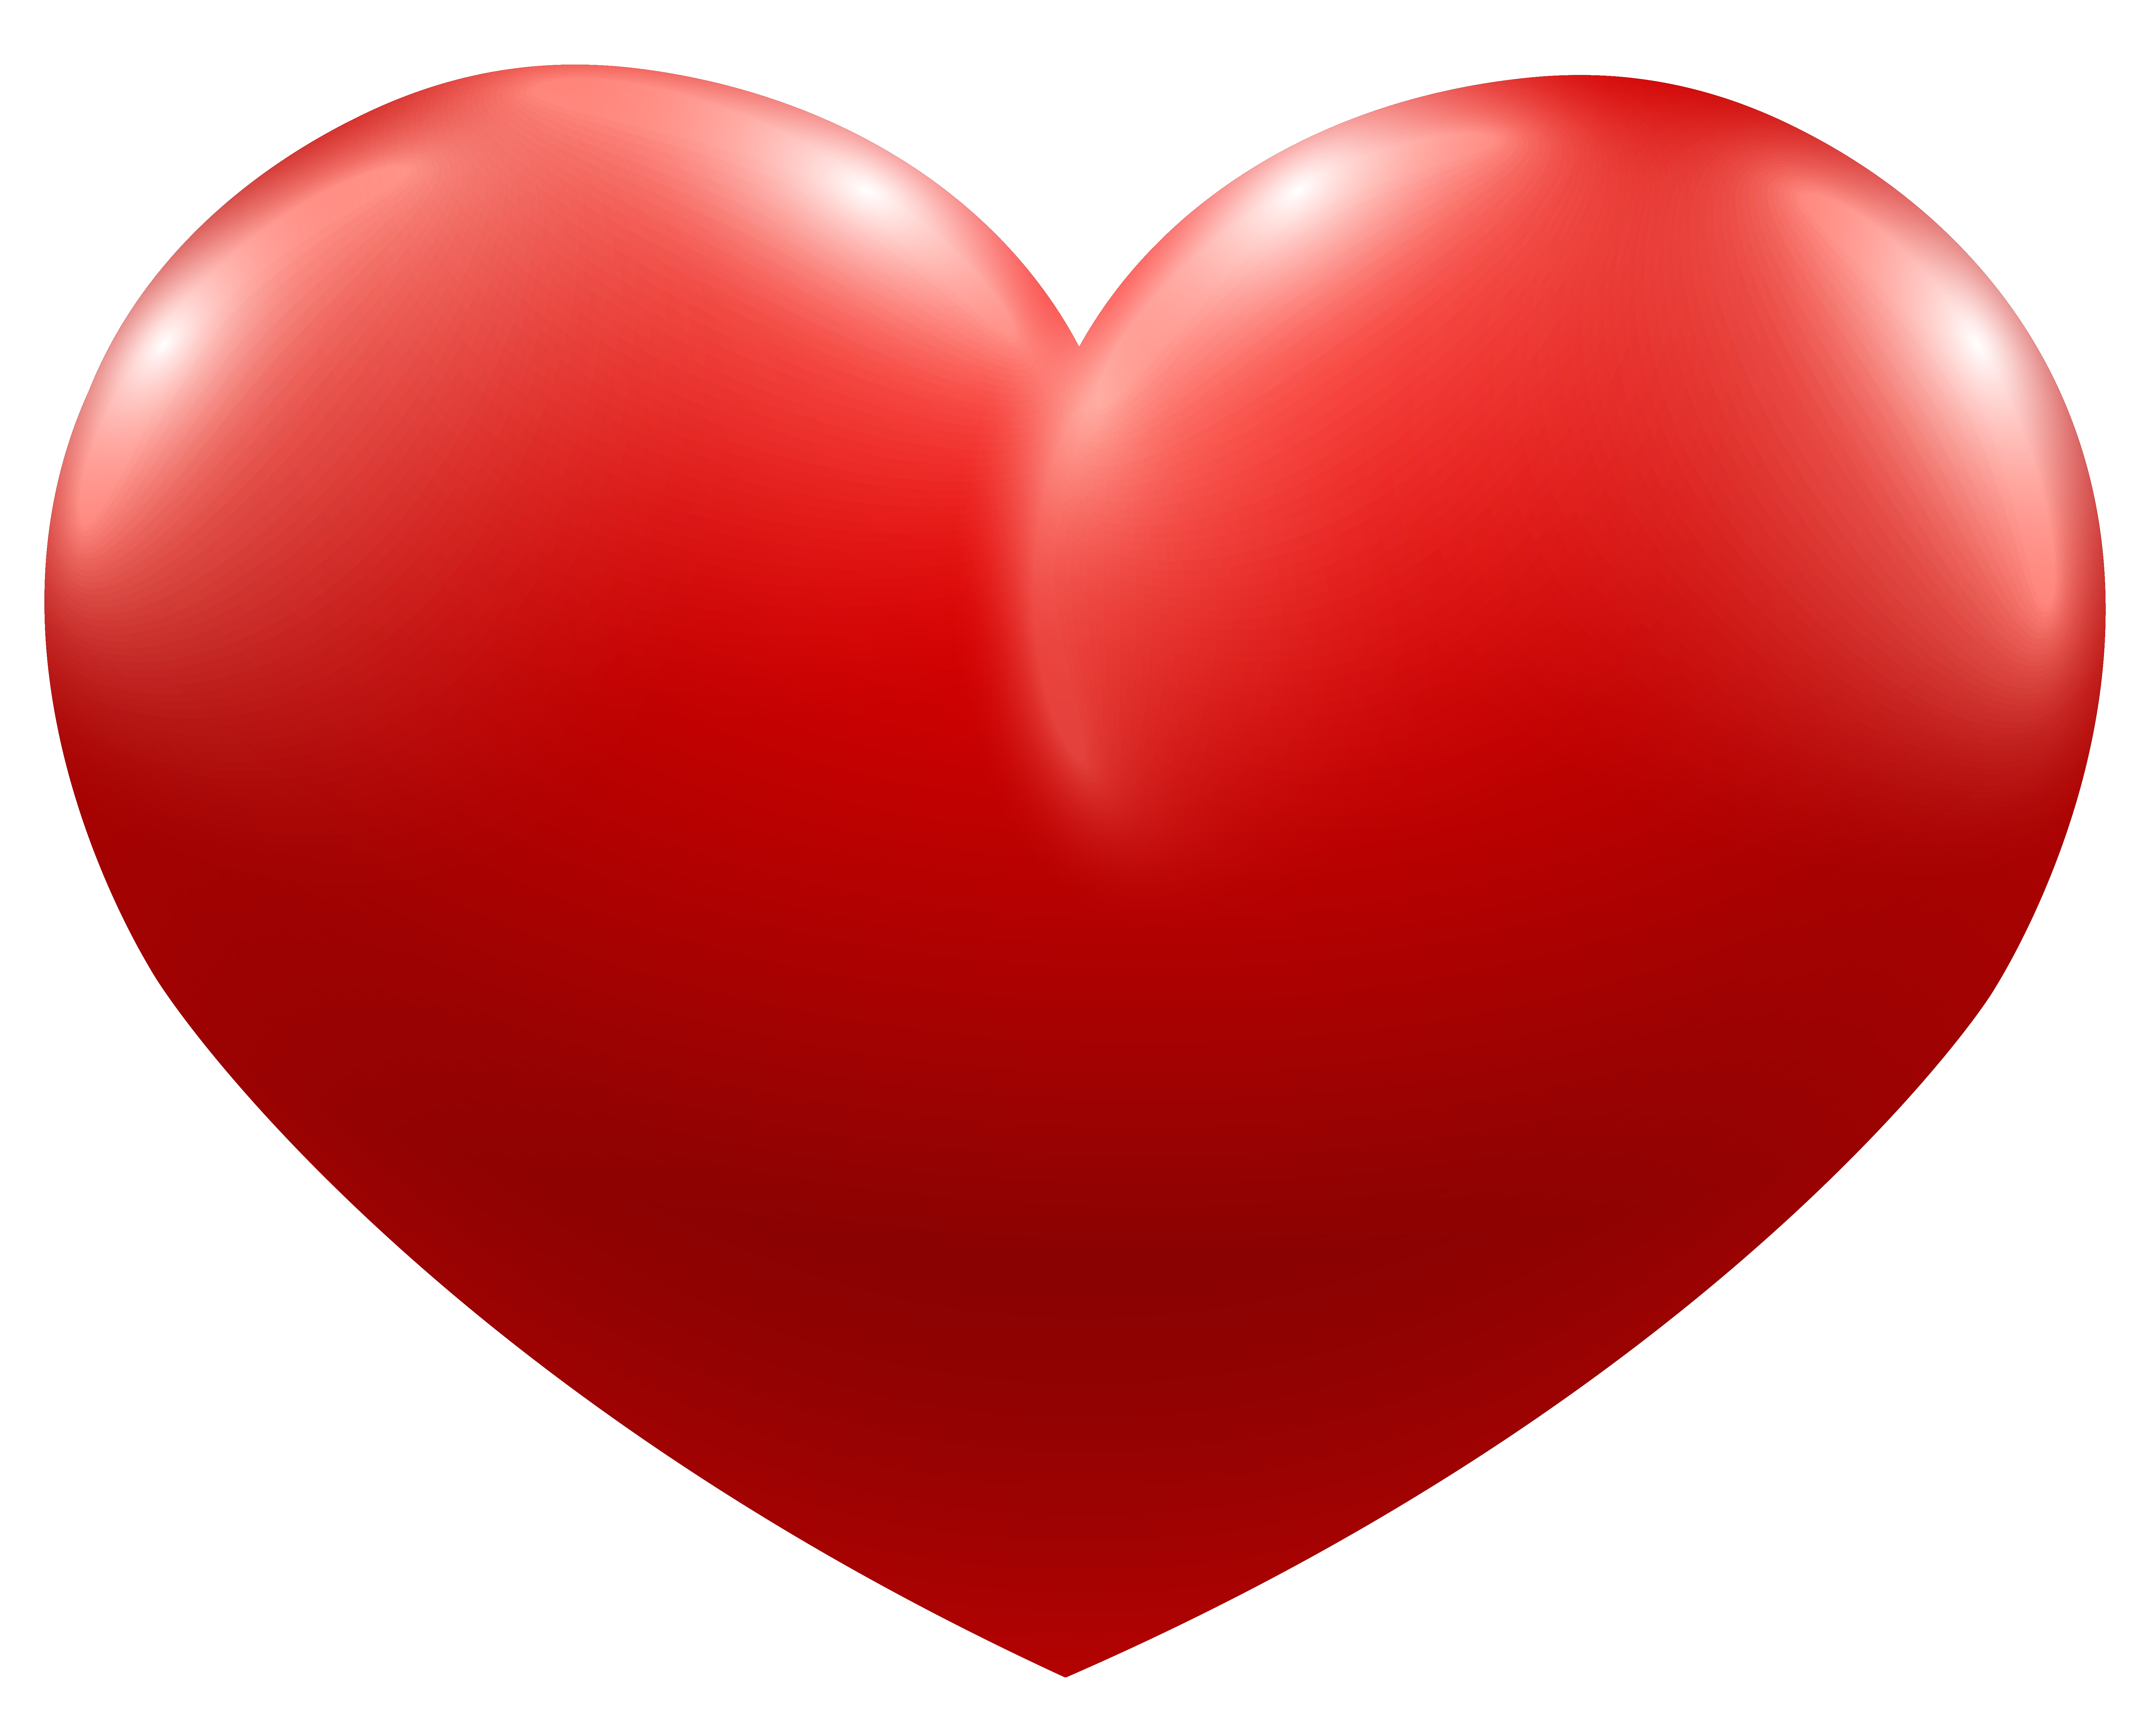 Red Heart PNG Image.